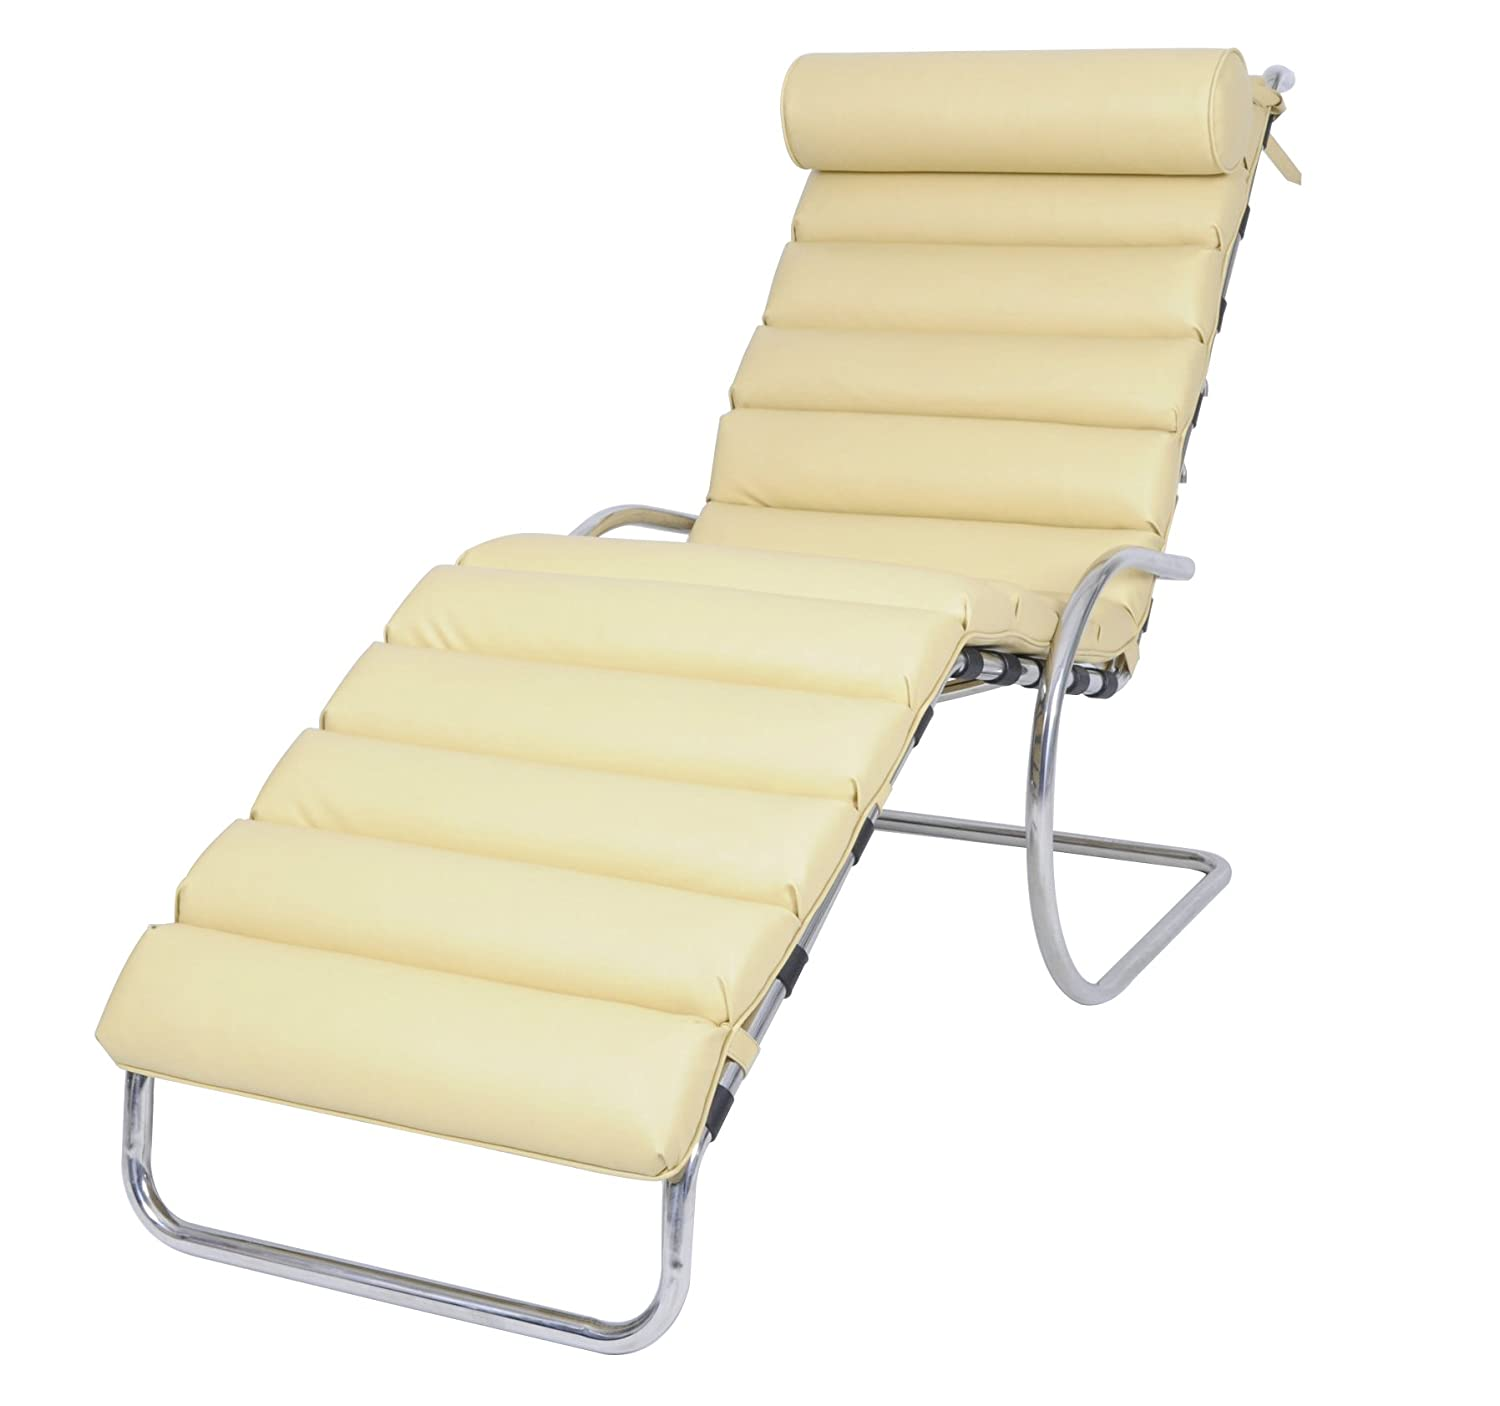 MLF MR Adjustable Zero Gravity Cantilever Chaise Lounge Beige Italian leather